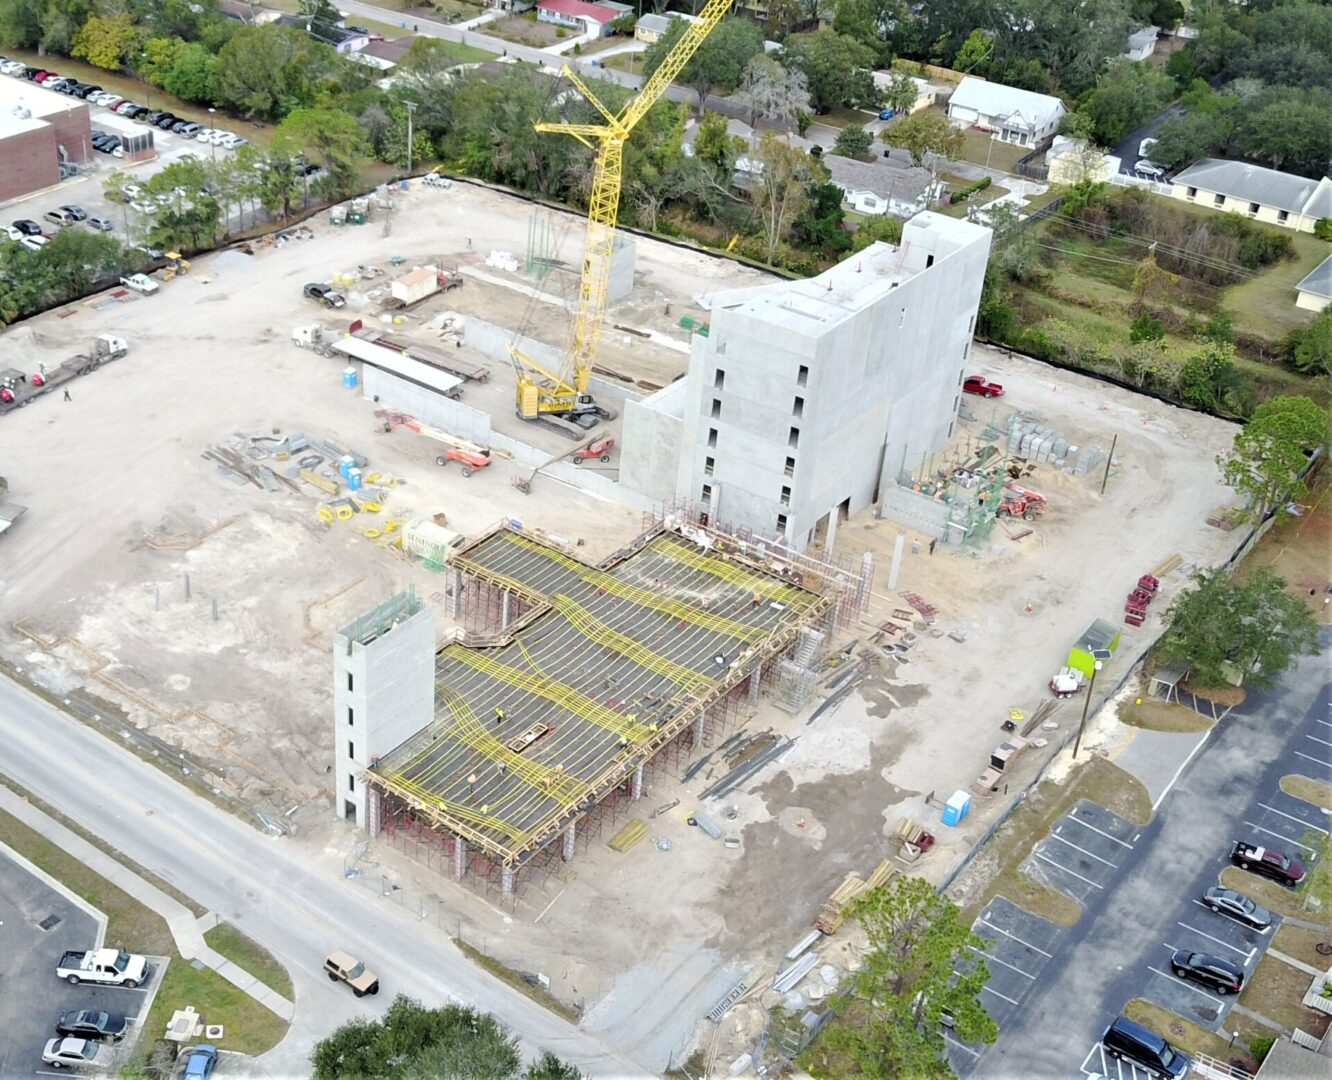 STANDARD @ TAMPA - Student Housing near USF with Parking Structure, VE Post-Tension Slab Designed